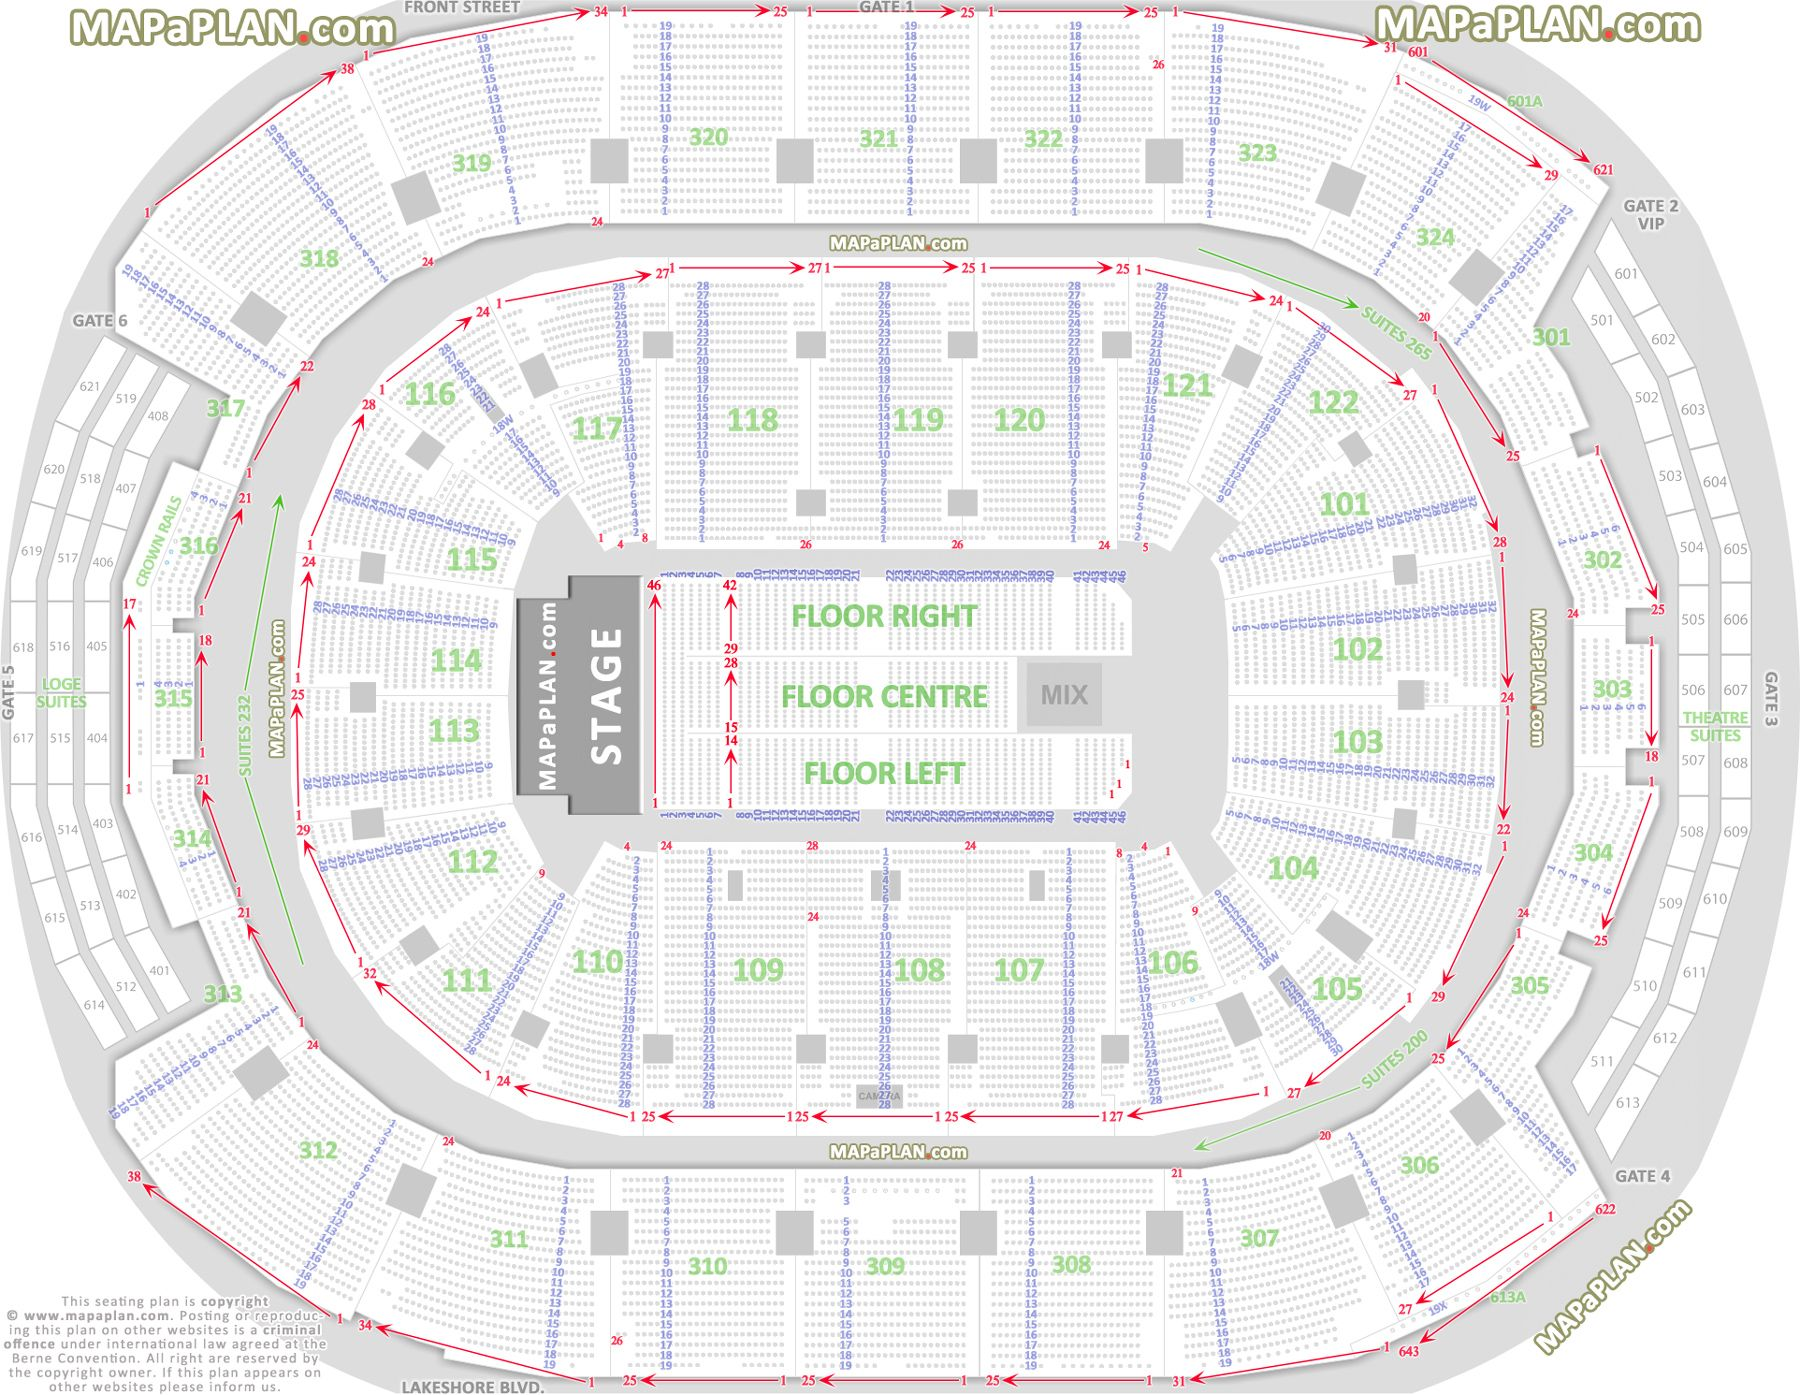 detailed seat row numbers end stage full concert sections floor plan arena lower upper bowl layout Vancouver Rogers Arena seating chart FYI